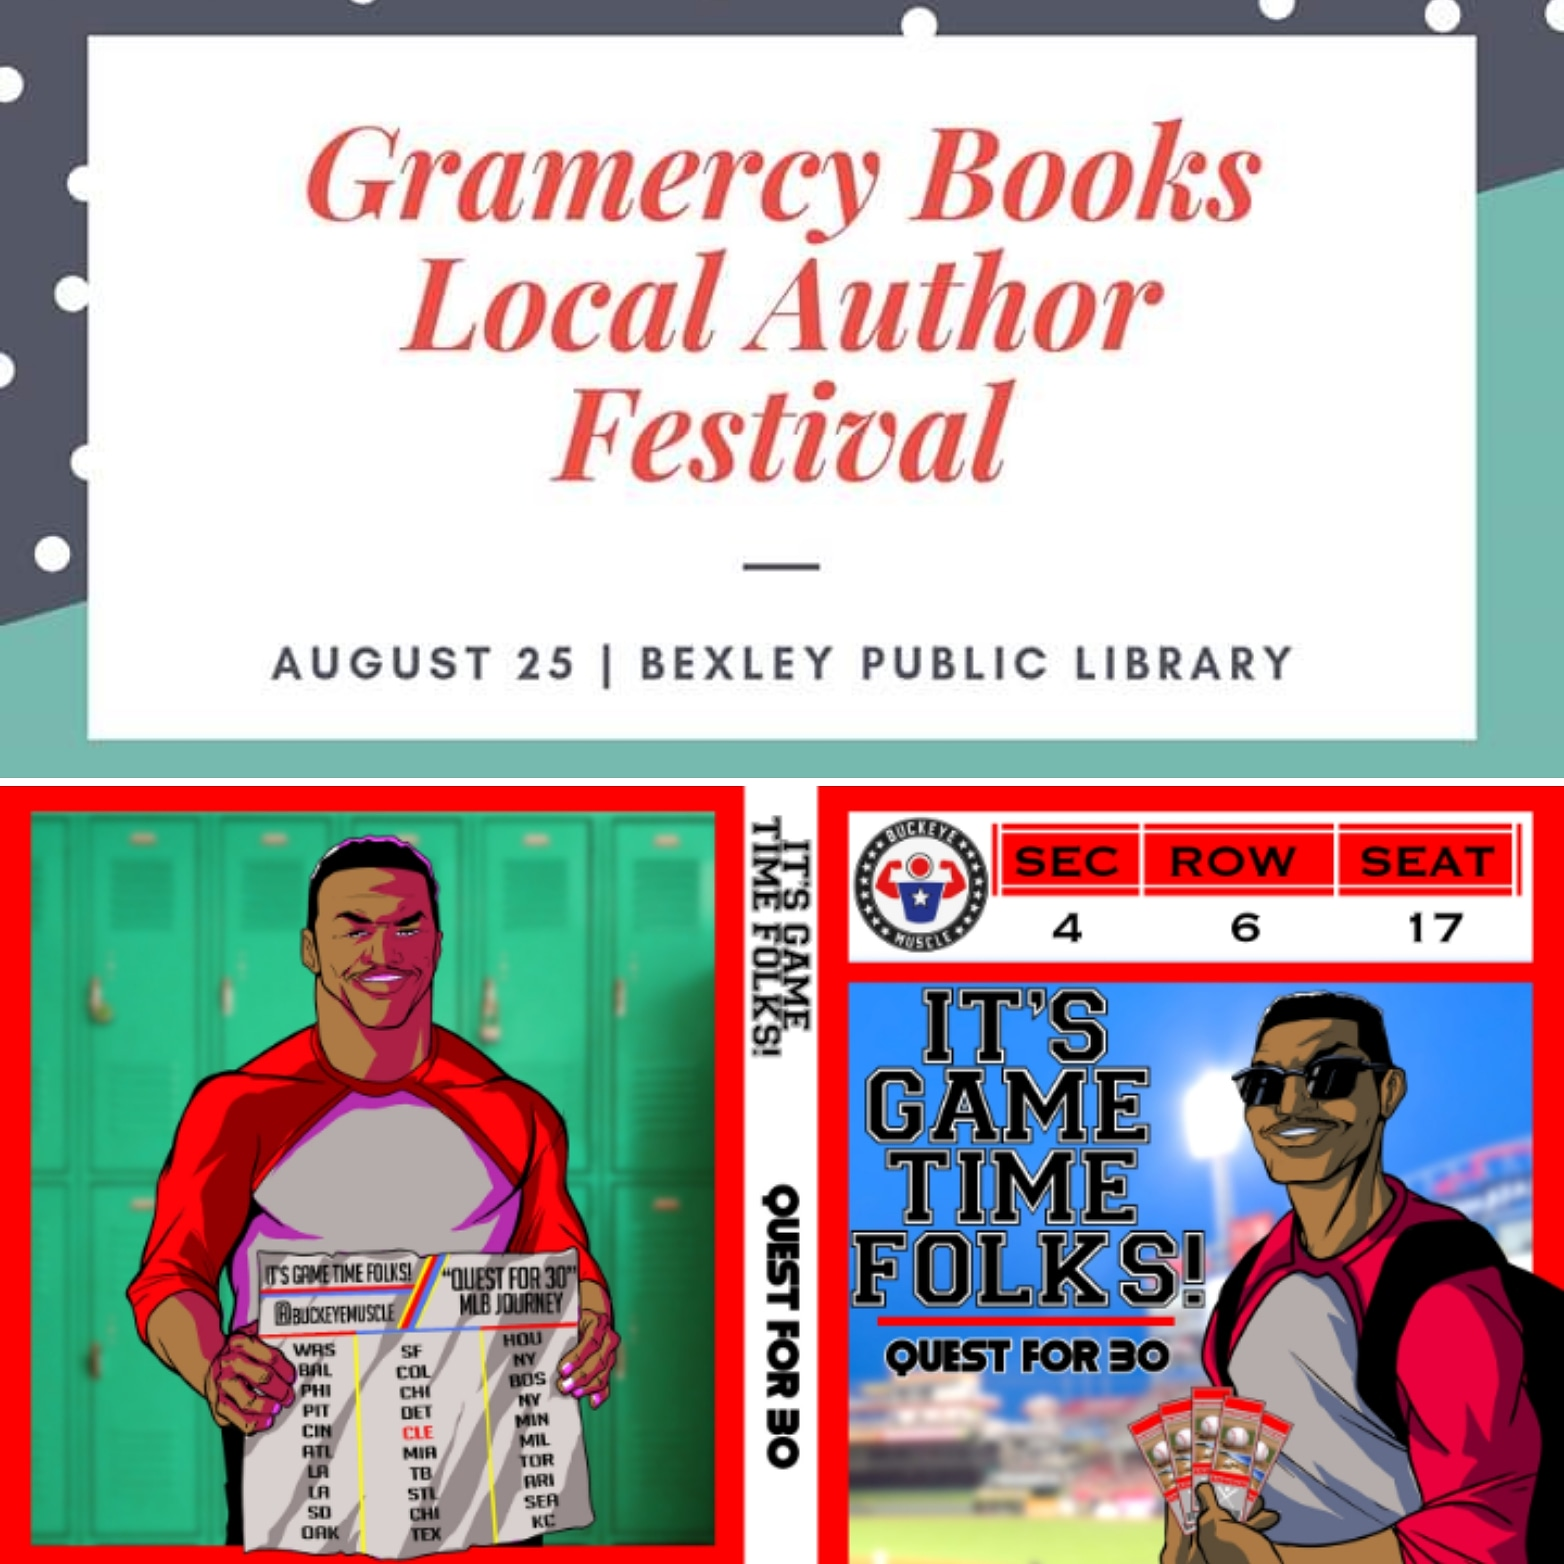 Meet me on August 25th at Bexley Public Library